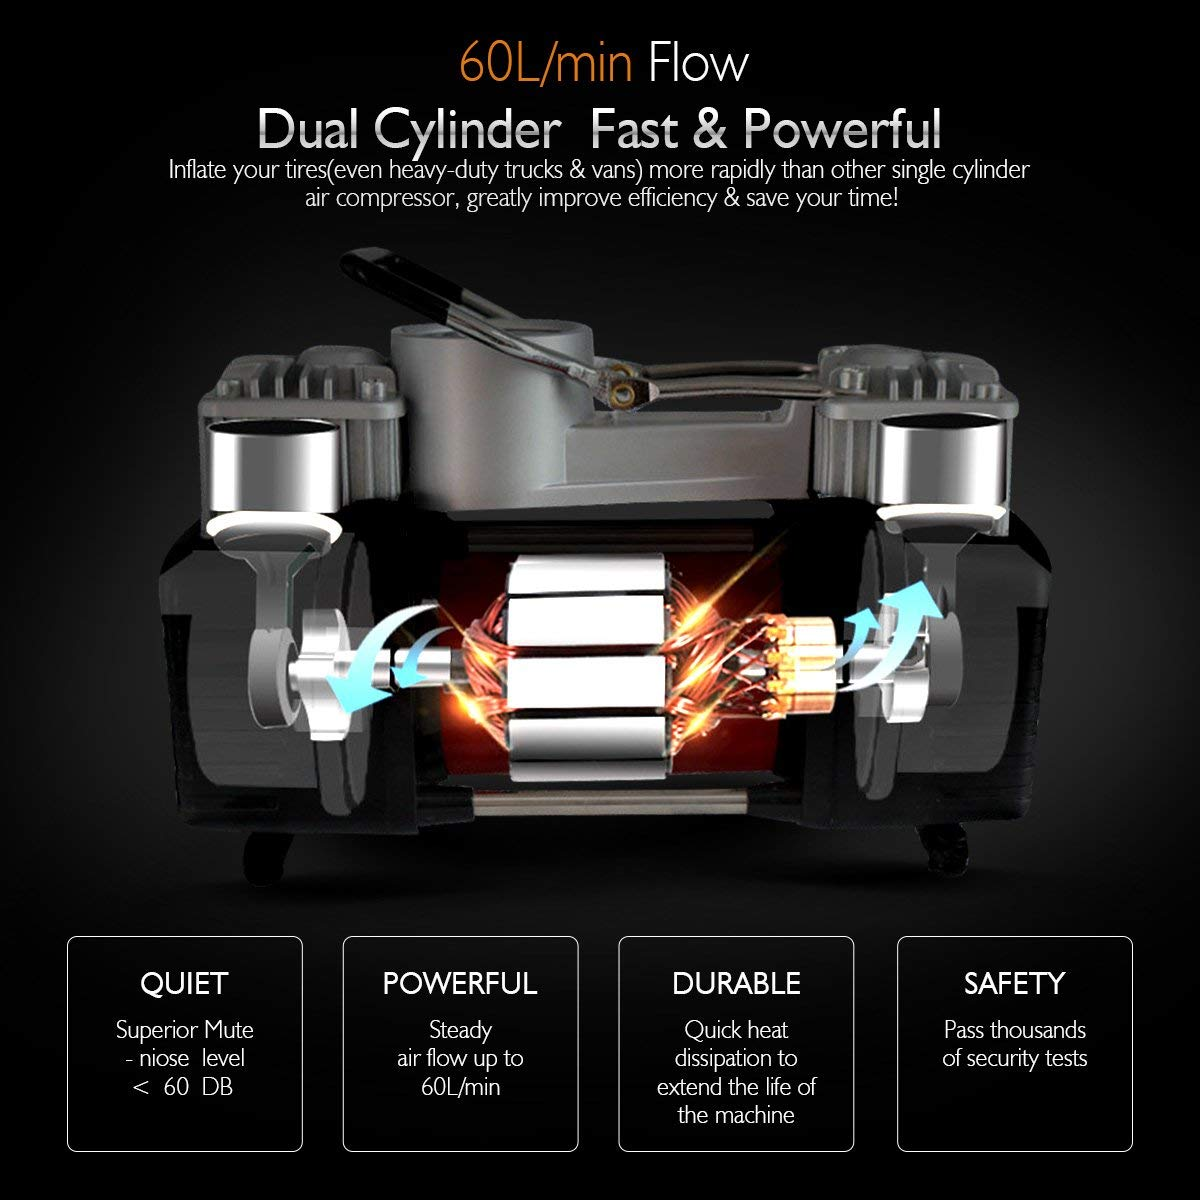 Audew Dual Cylinder Air Compressor Pump, Two Times Faster Heavy Duty Portable Air Pump, Faster Auto 12V Tire Inflator for Car, Truck, RV, Bicycle and Other Inflatables by Audew (Image #3)